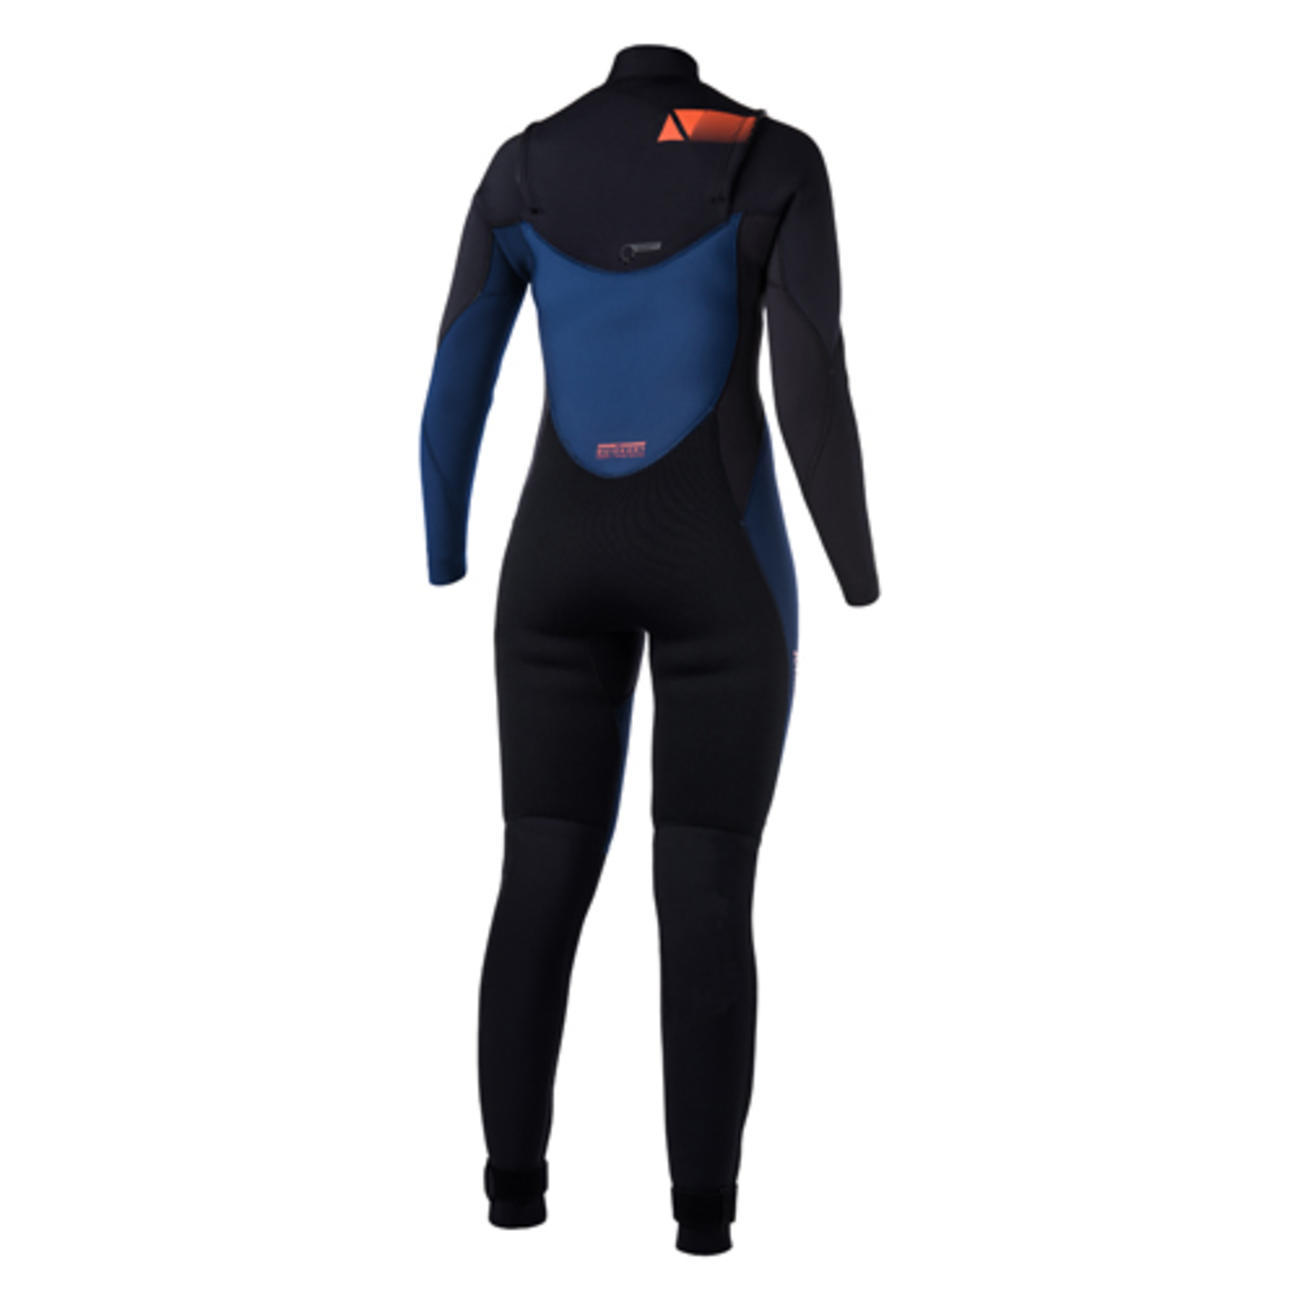 Ace Fullsuit 4/3mm Fzip Women